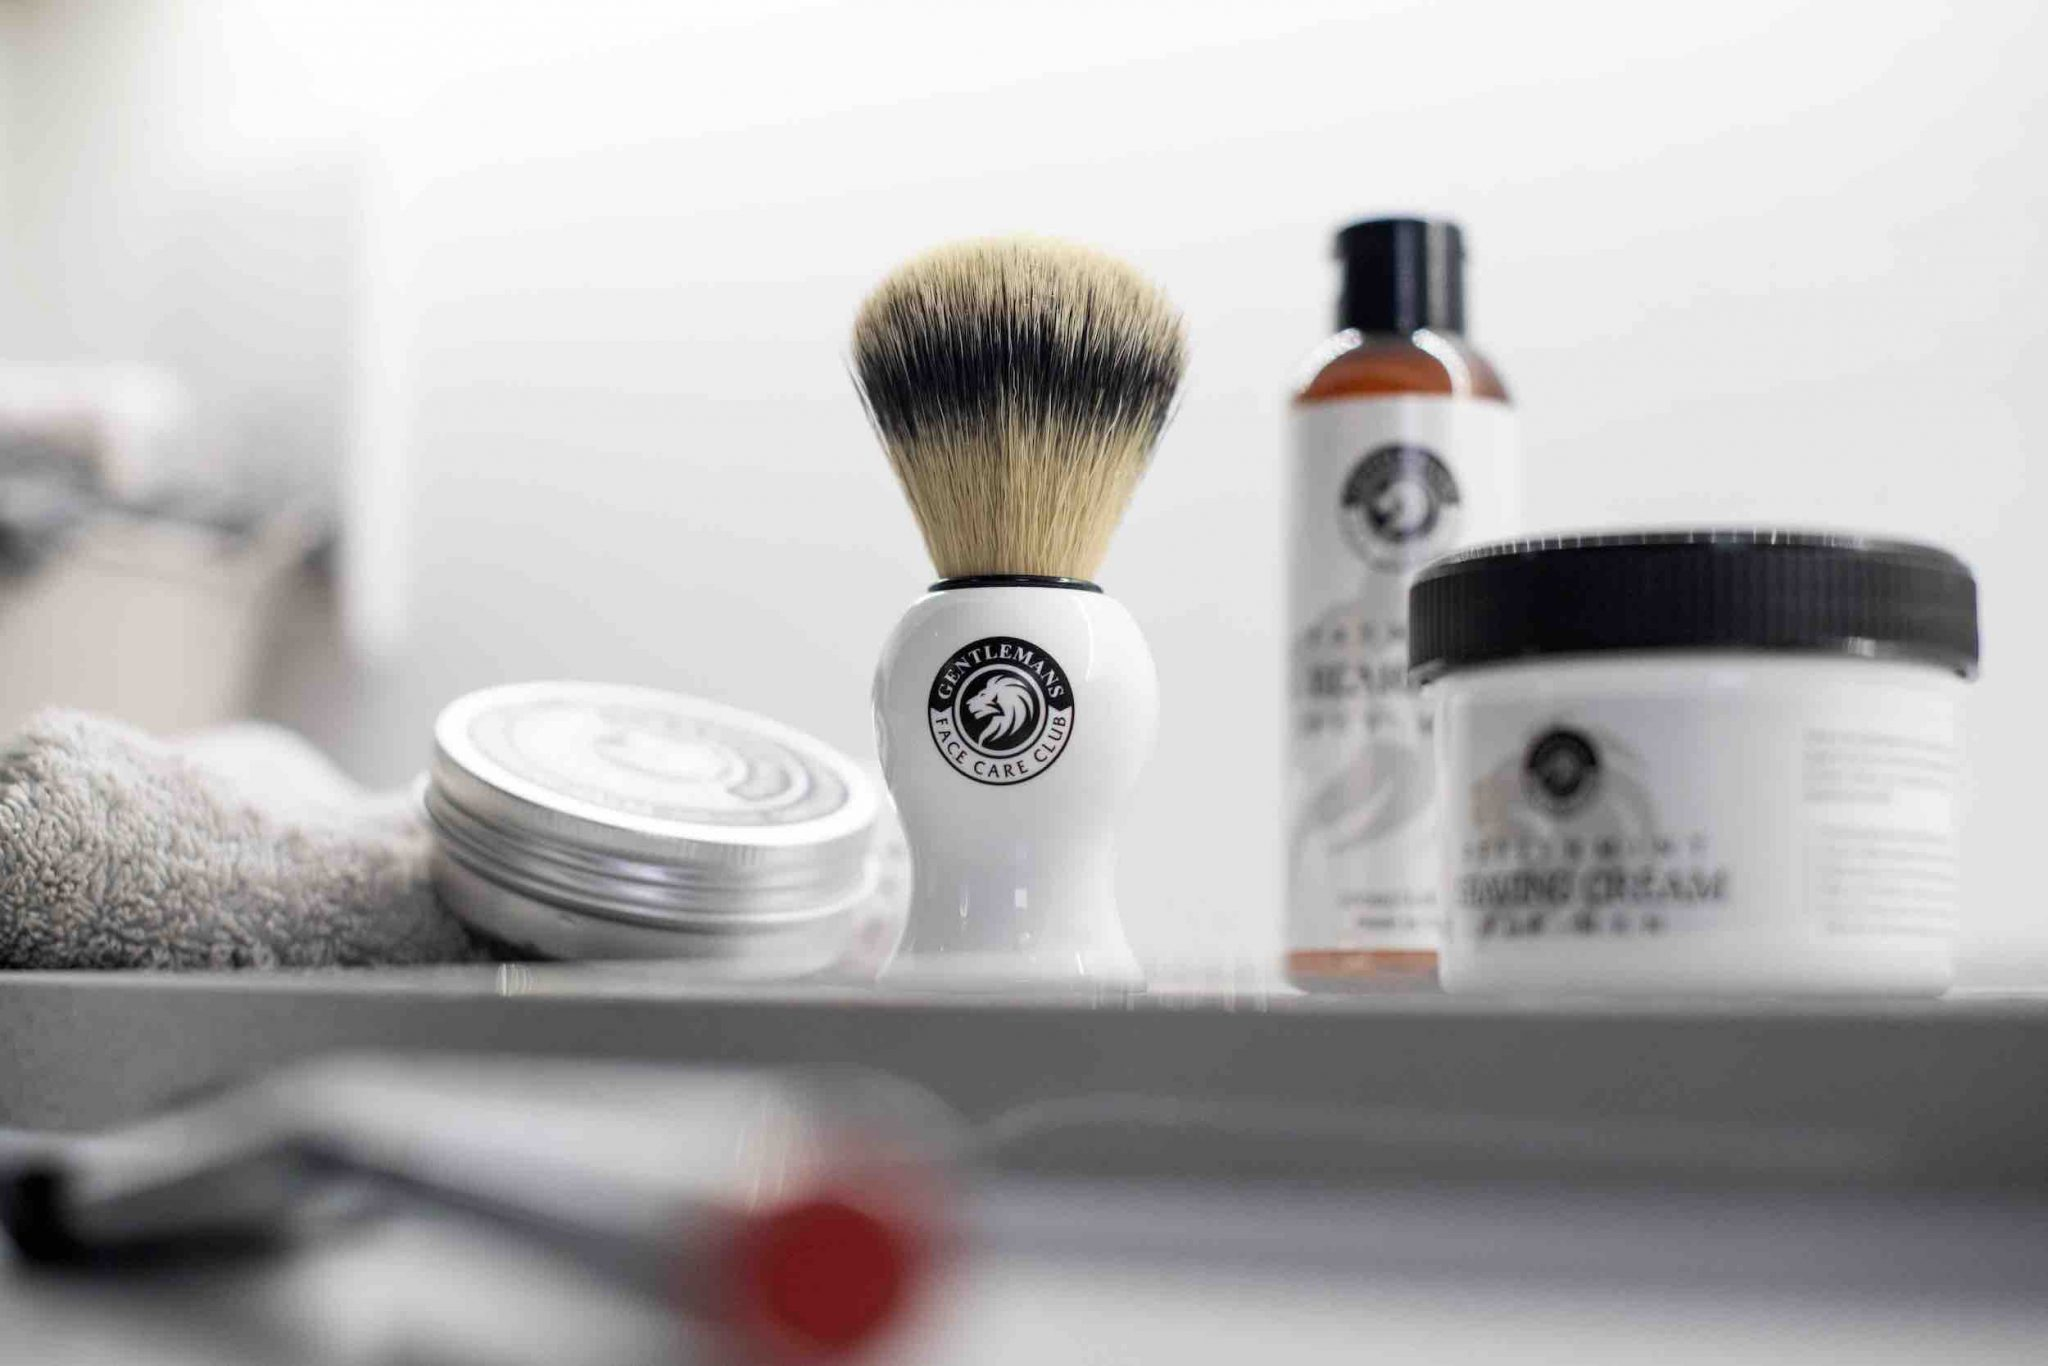 traditional shaving products - brush, cream and balm